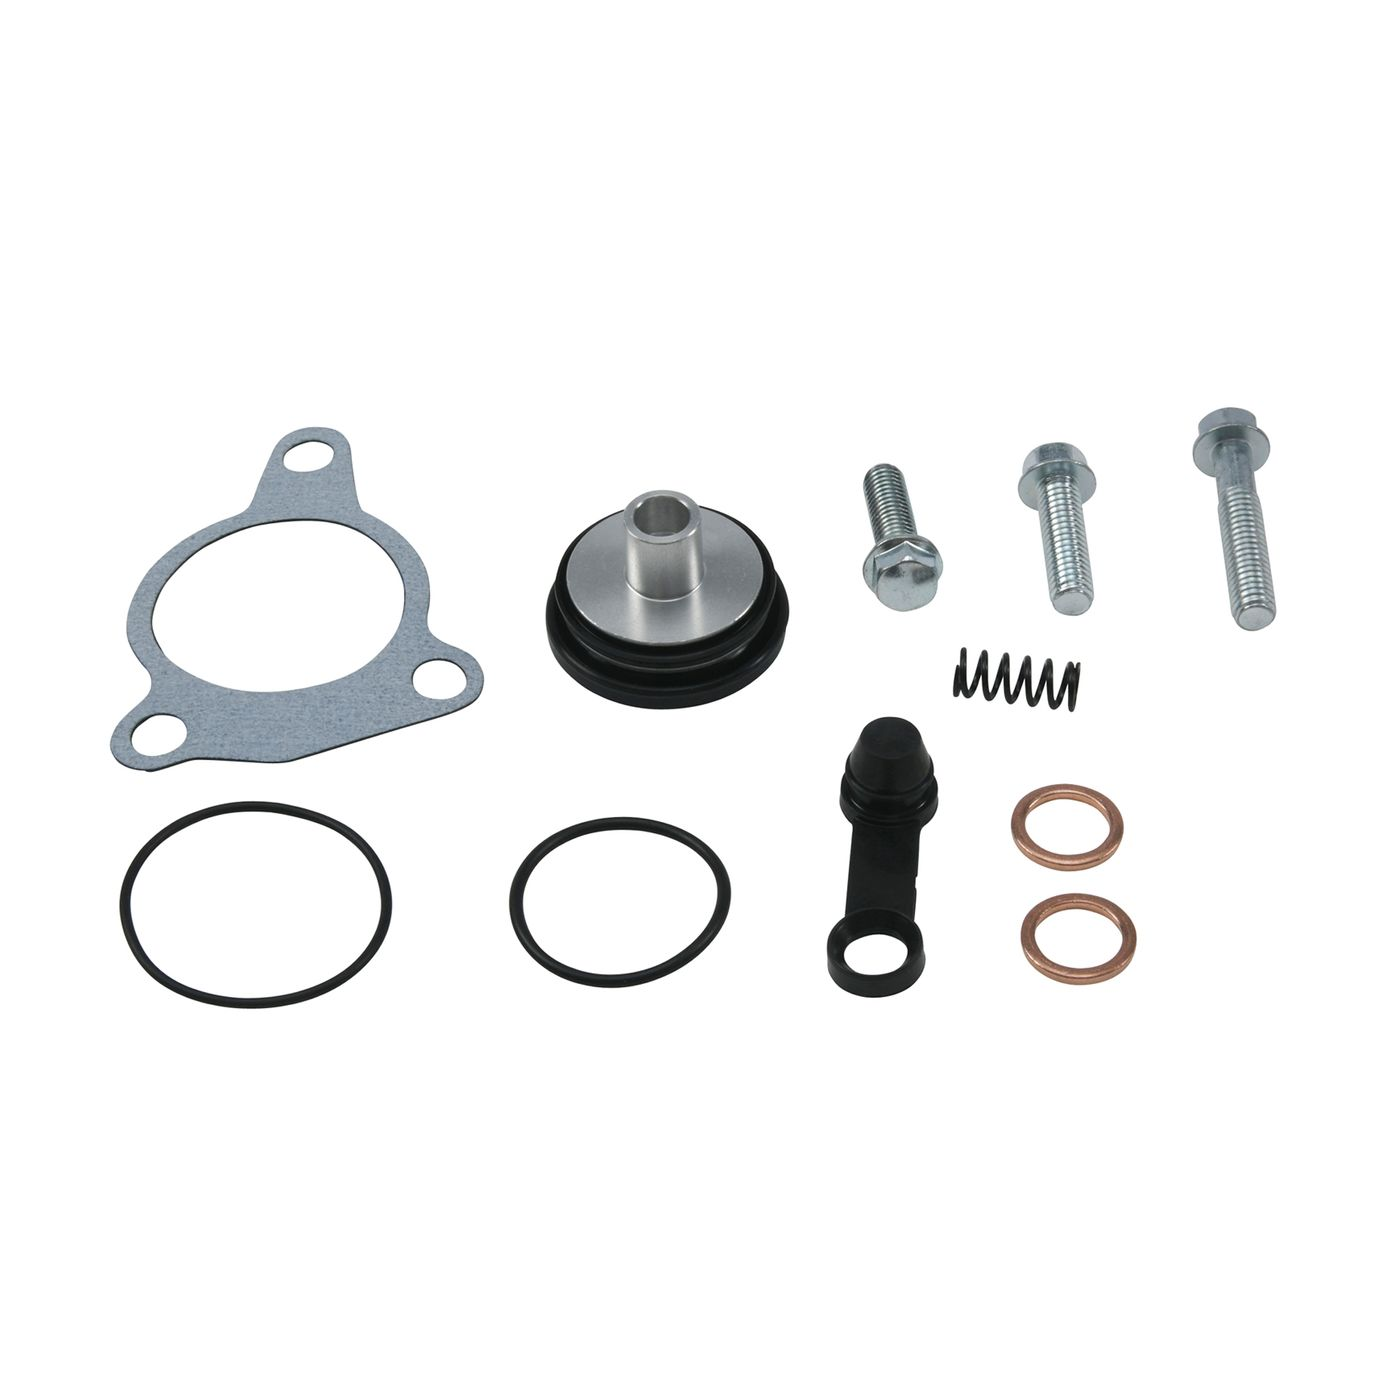 Wrp Clutch Slave Cylinder Kits - WRP186012 image